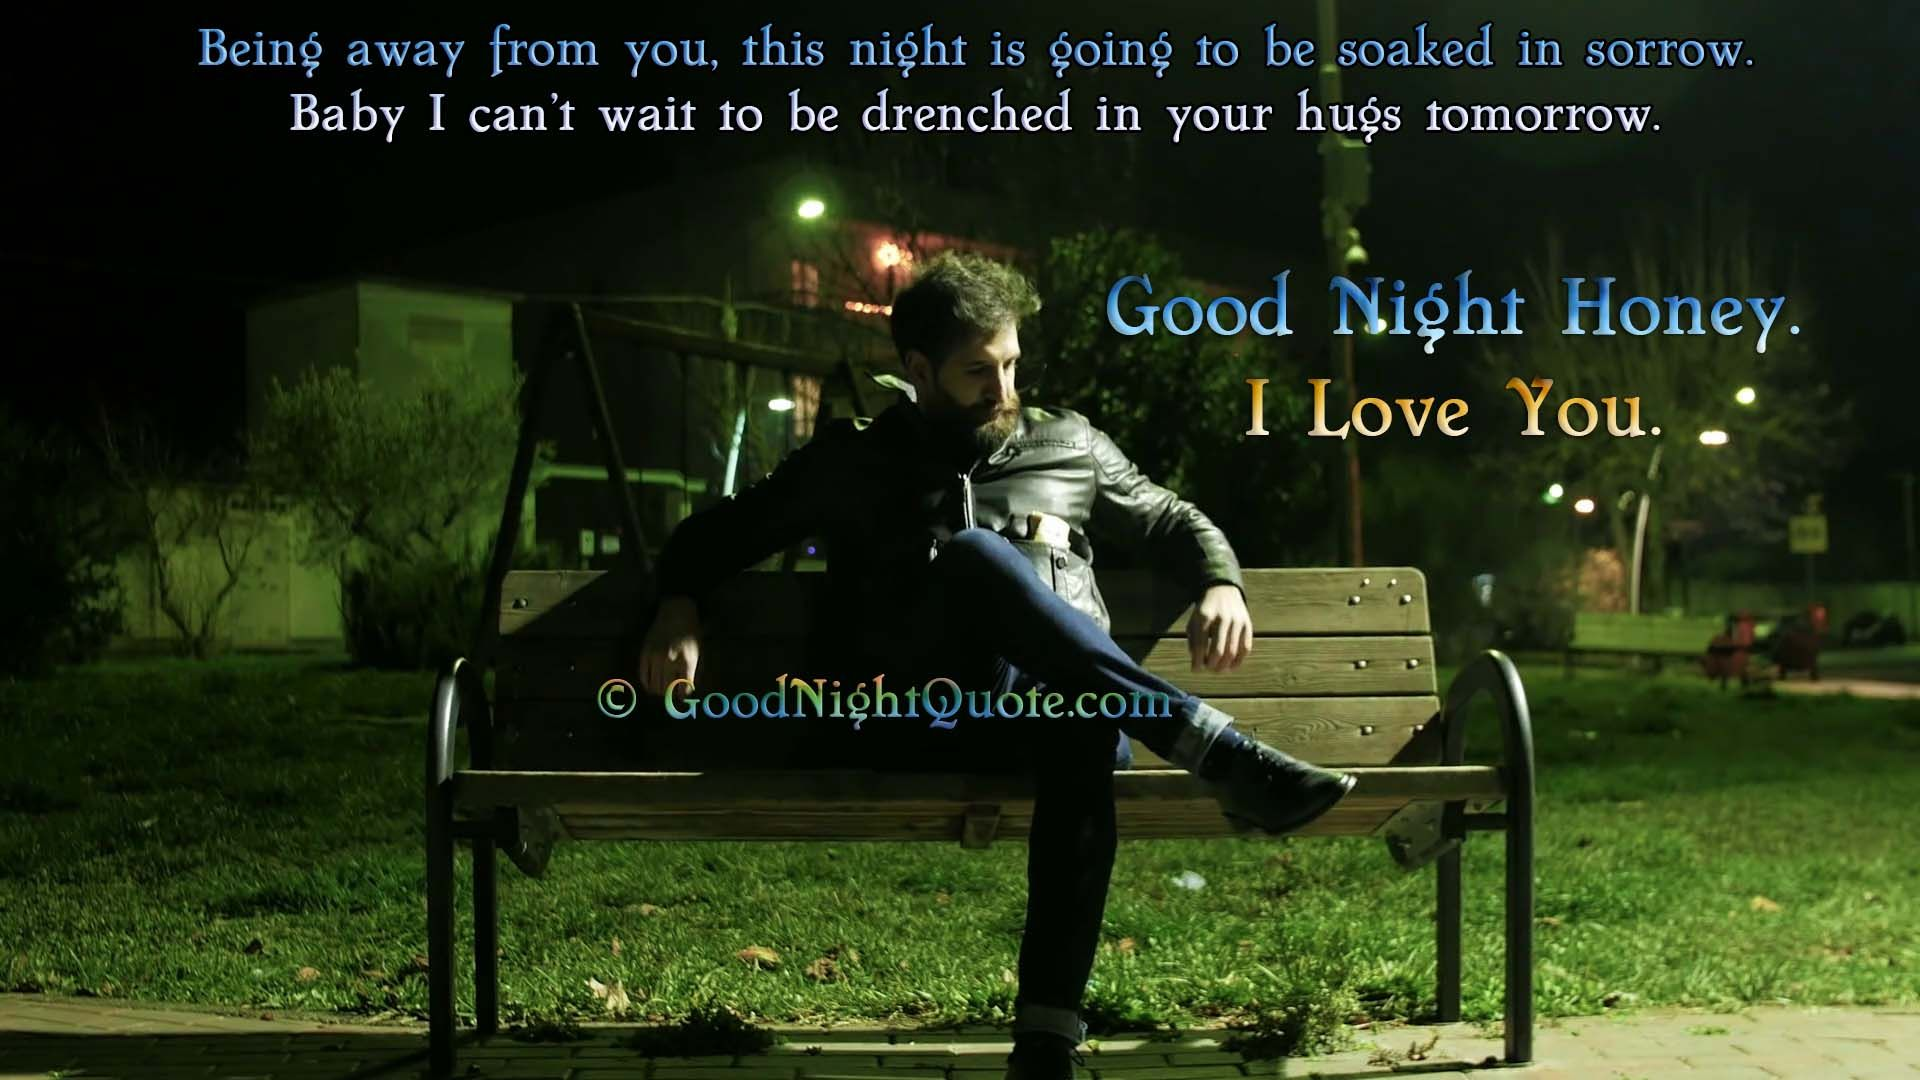 Best Good Night Quote For Wife Man Sitting Alone On The Bench